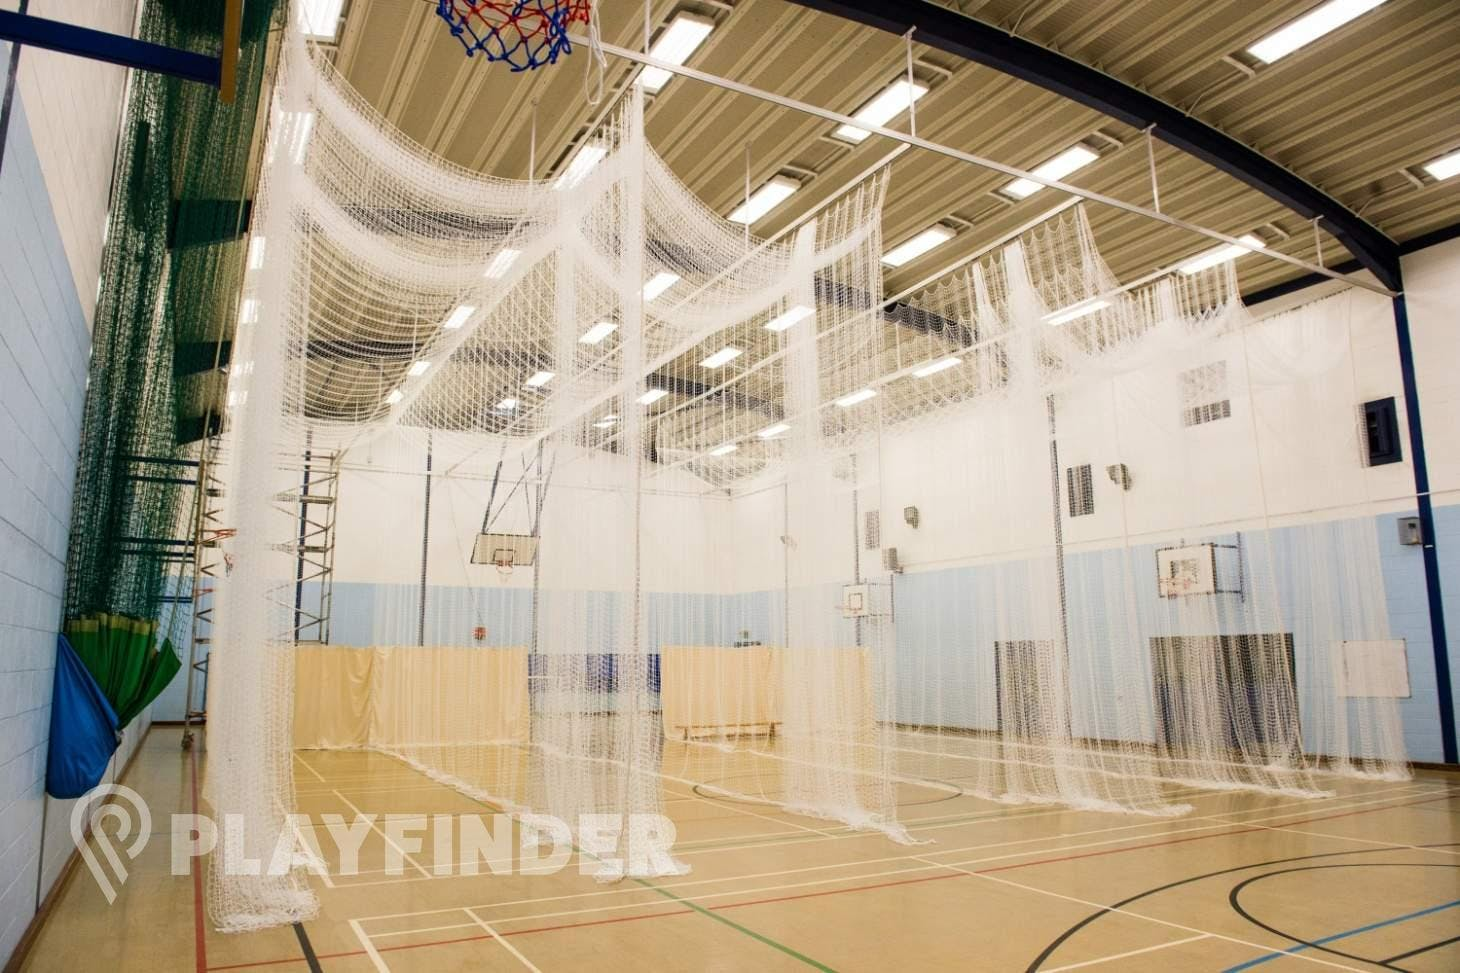 Featherstone Sports Centre Indoor | Hard badminton court